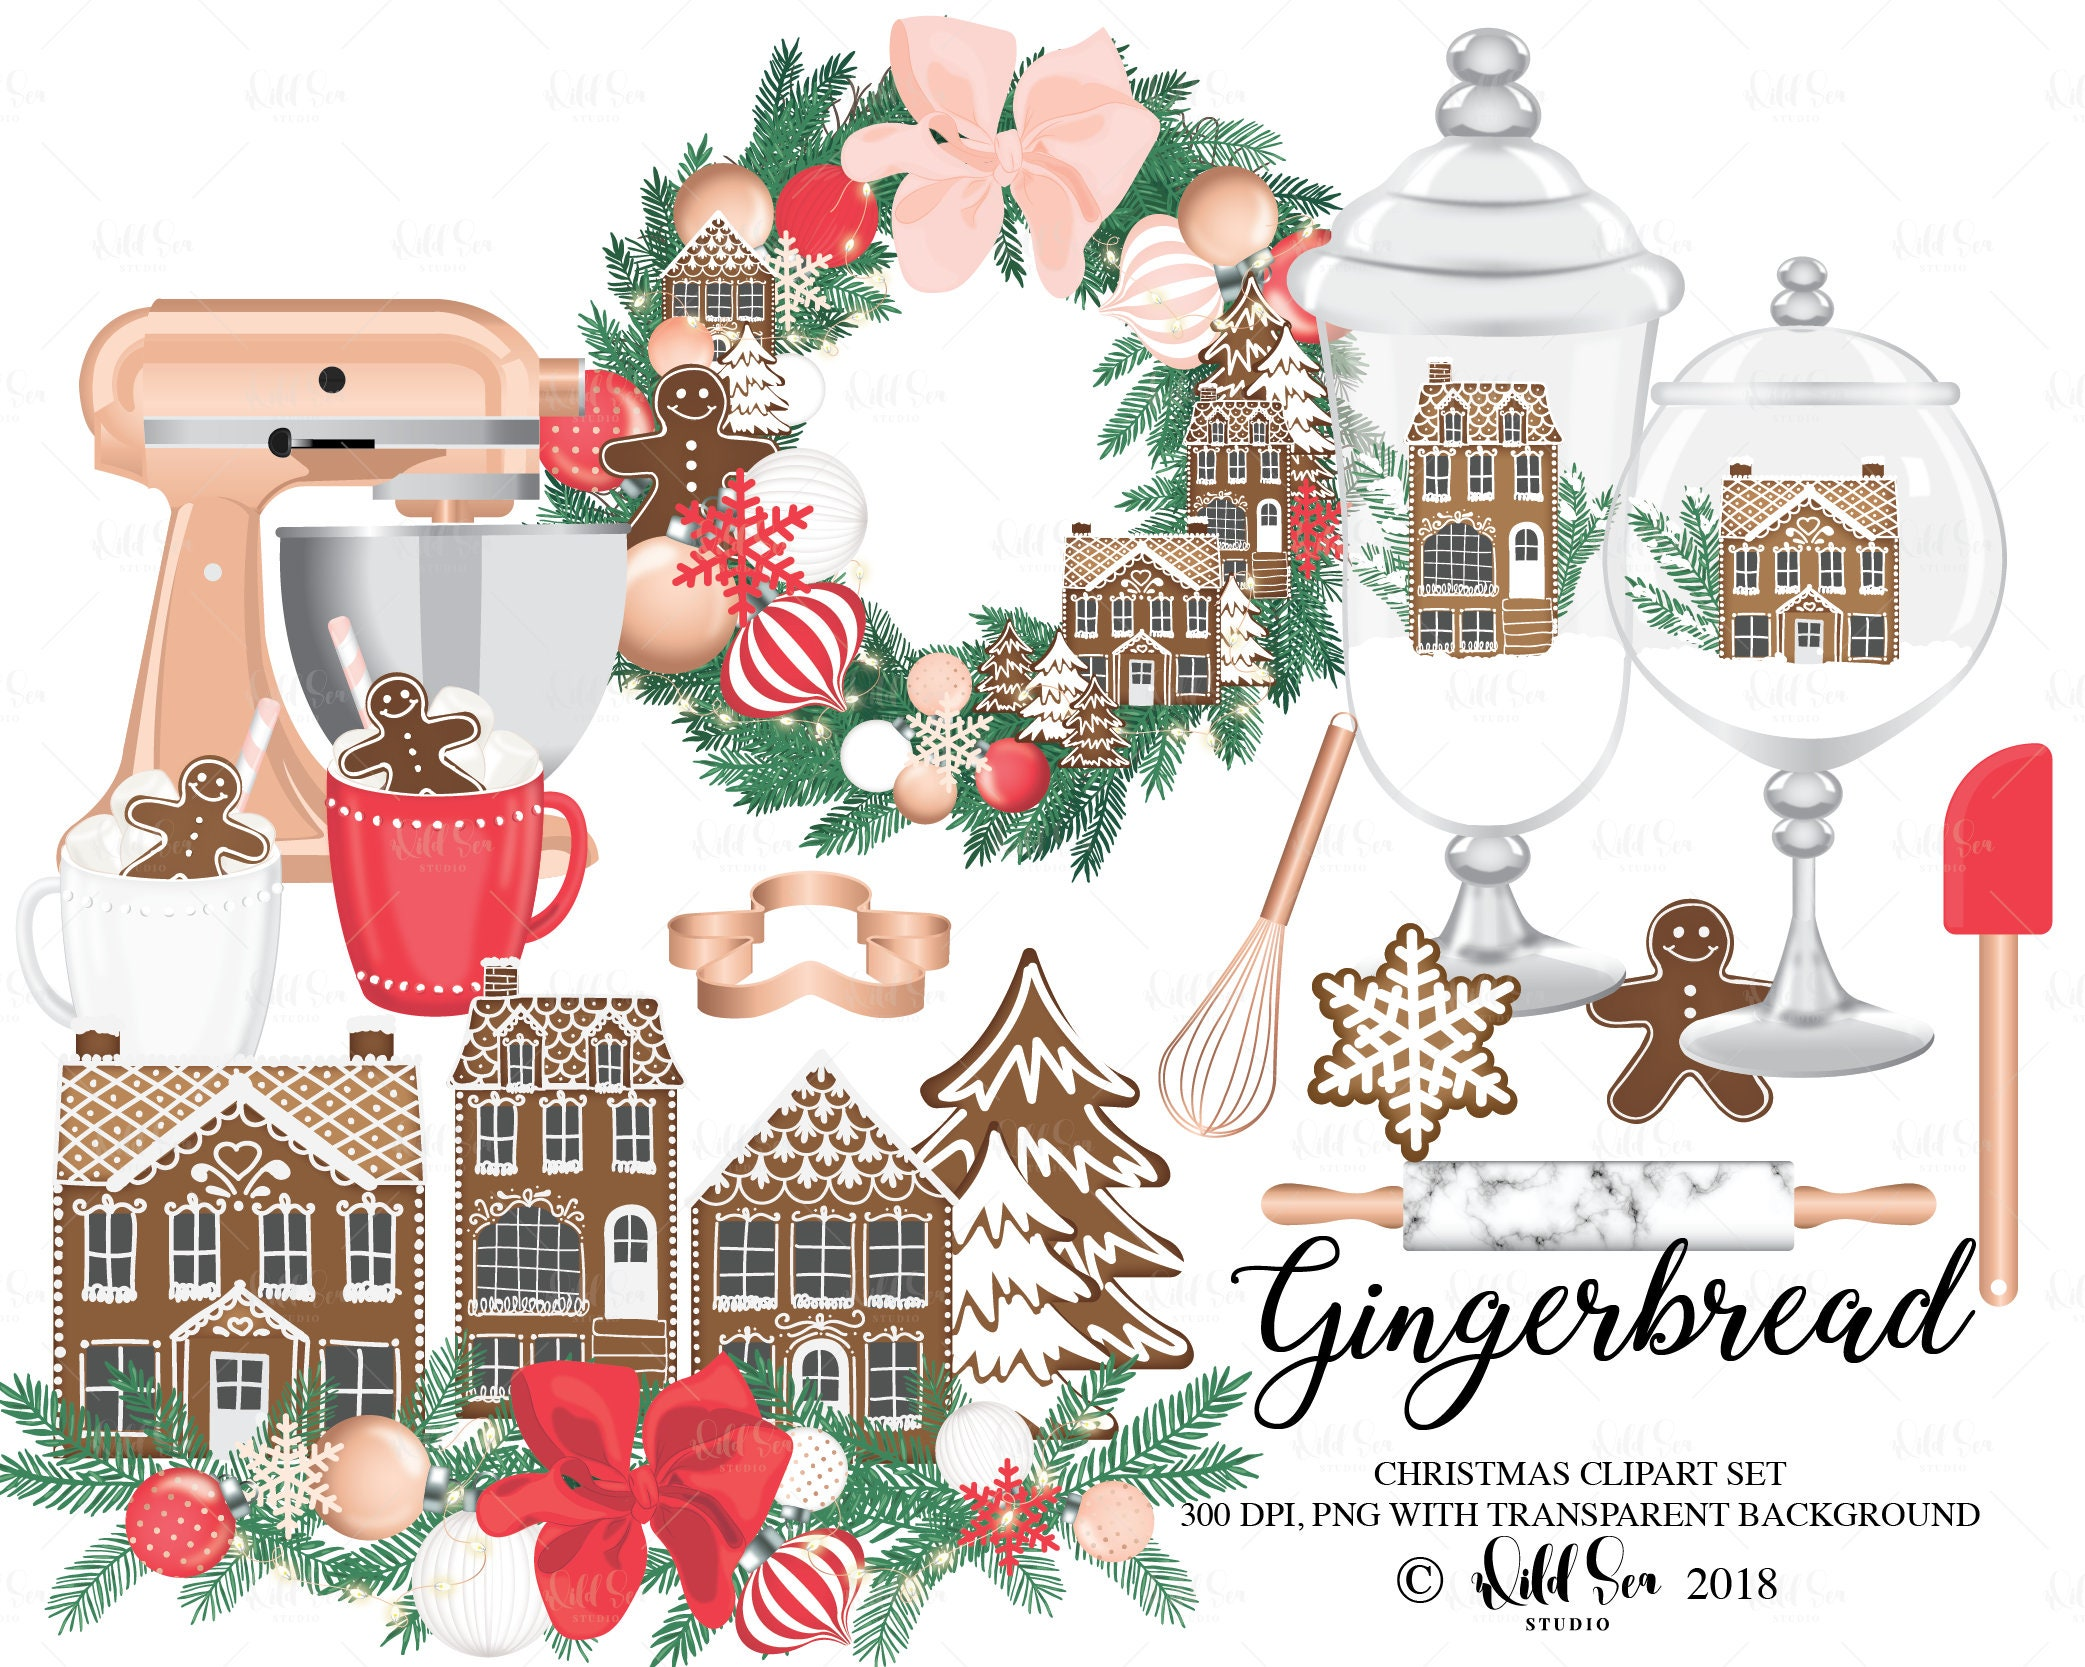 Gingerbread Christmas Clipart Image set png 300 dpi